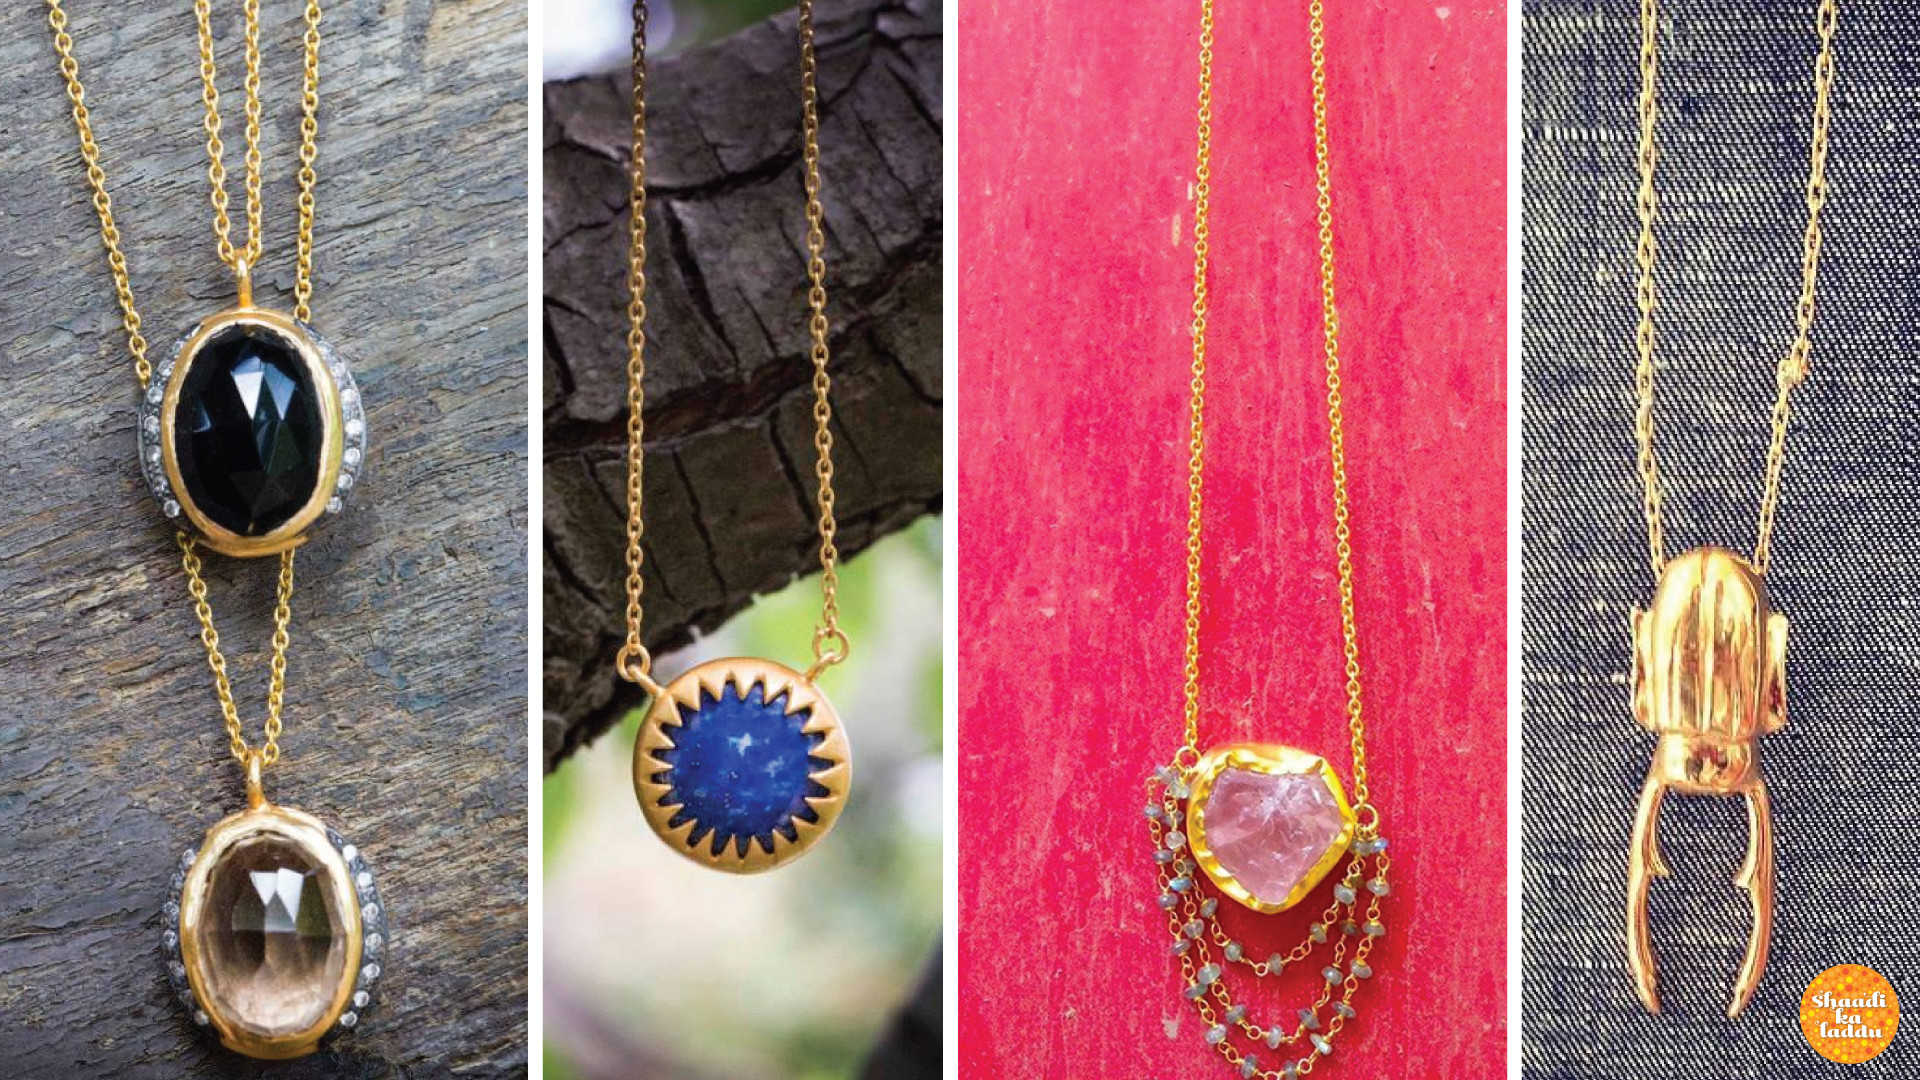 Pendant collection from Nimai store